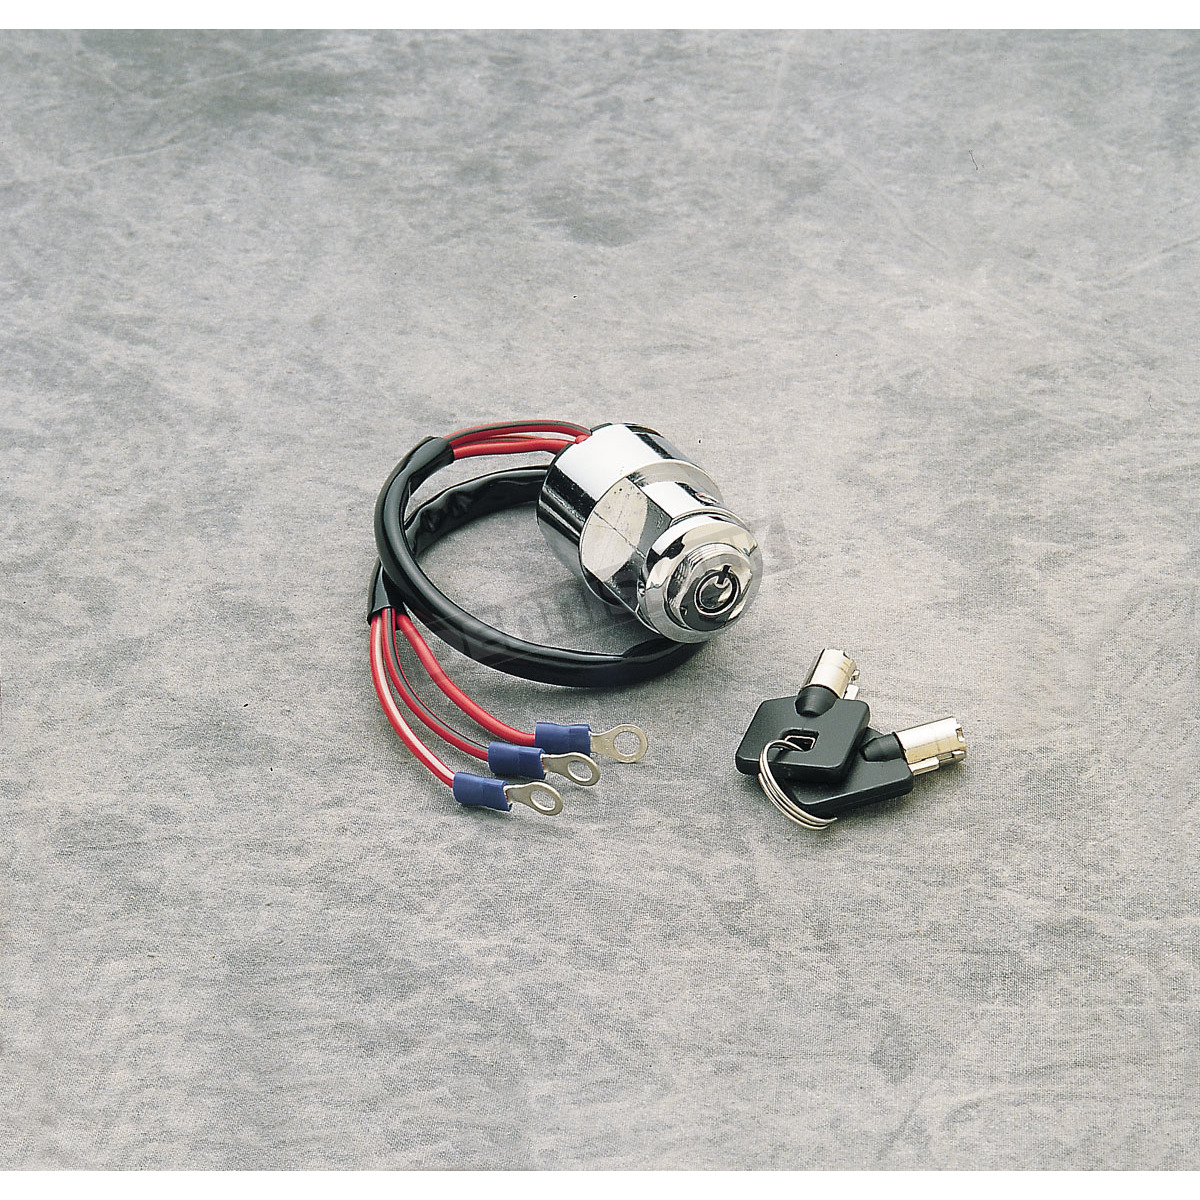 hight resolution of drag specialties custom round key ignition switch ds 272112